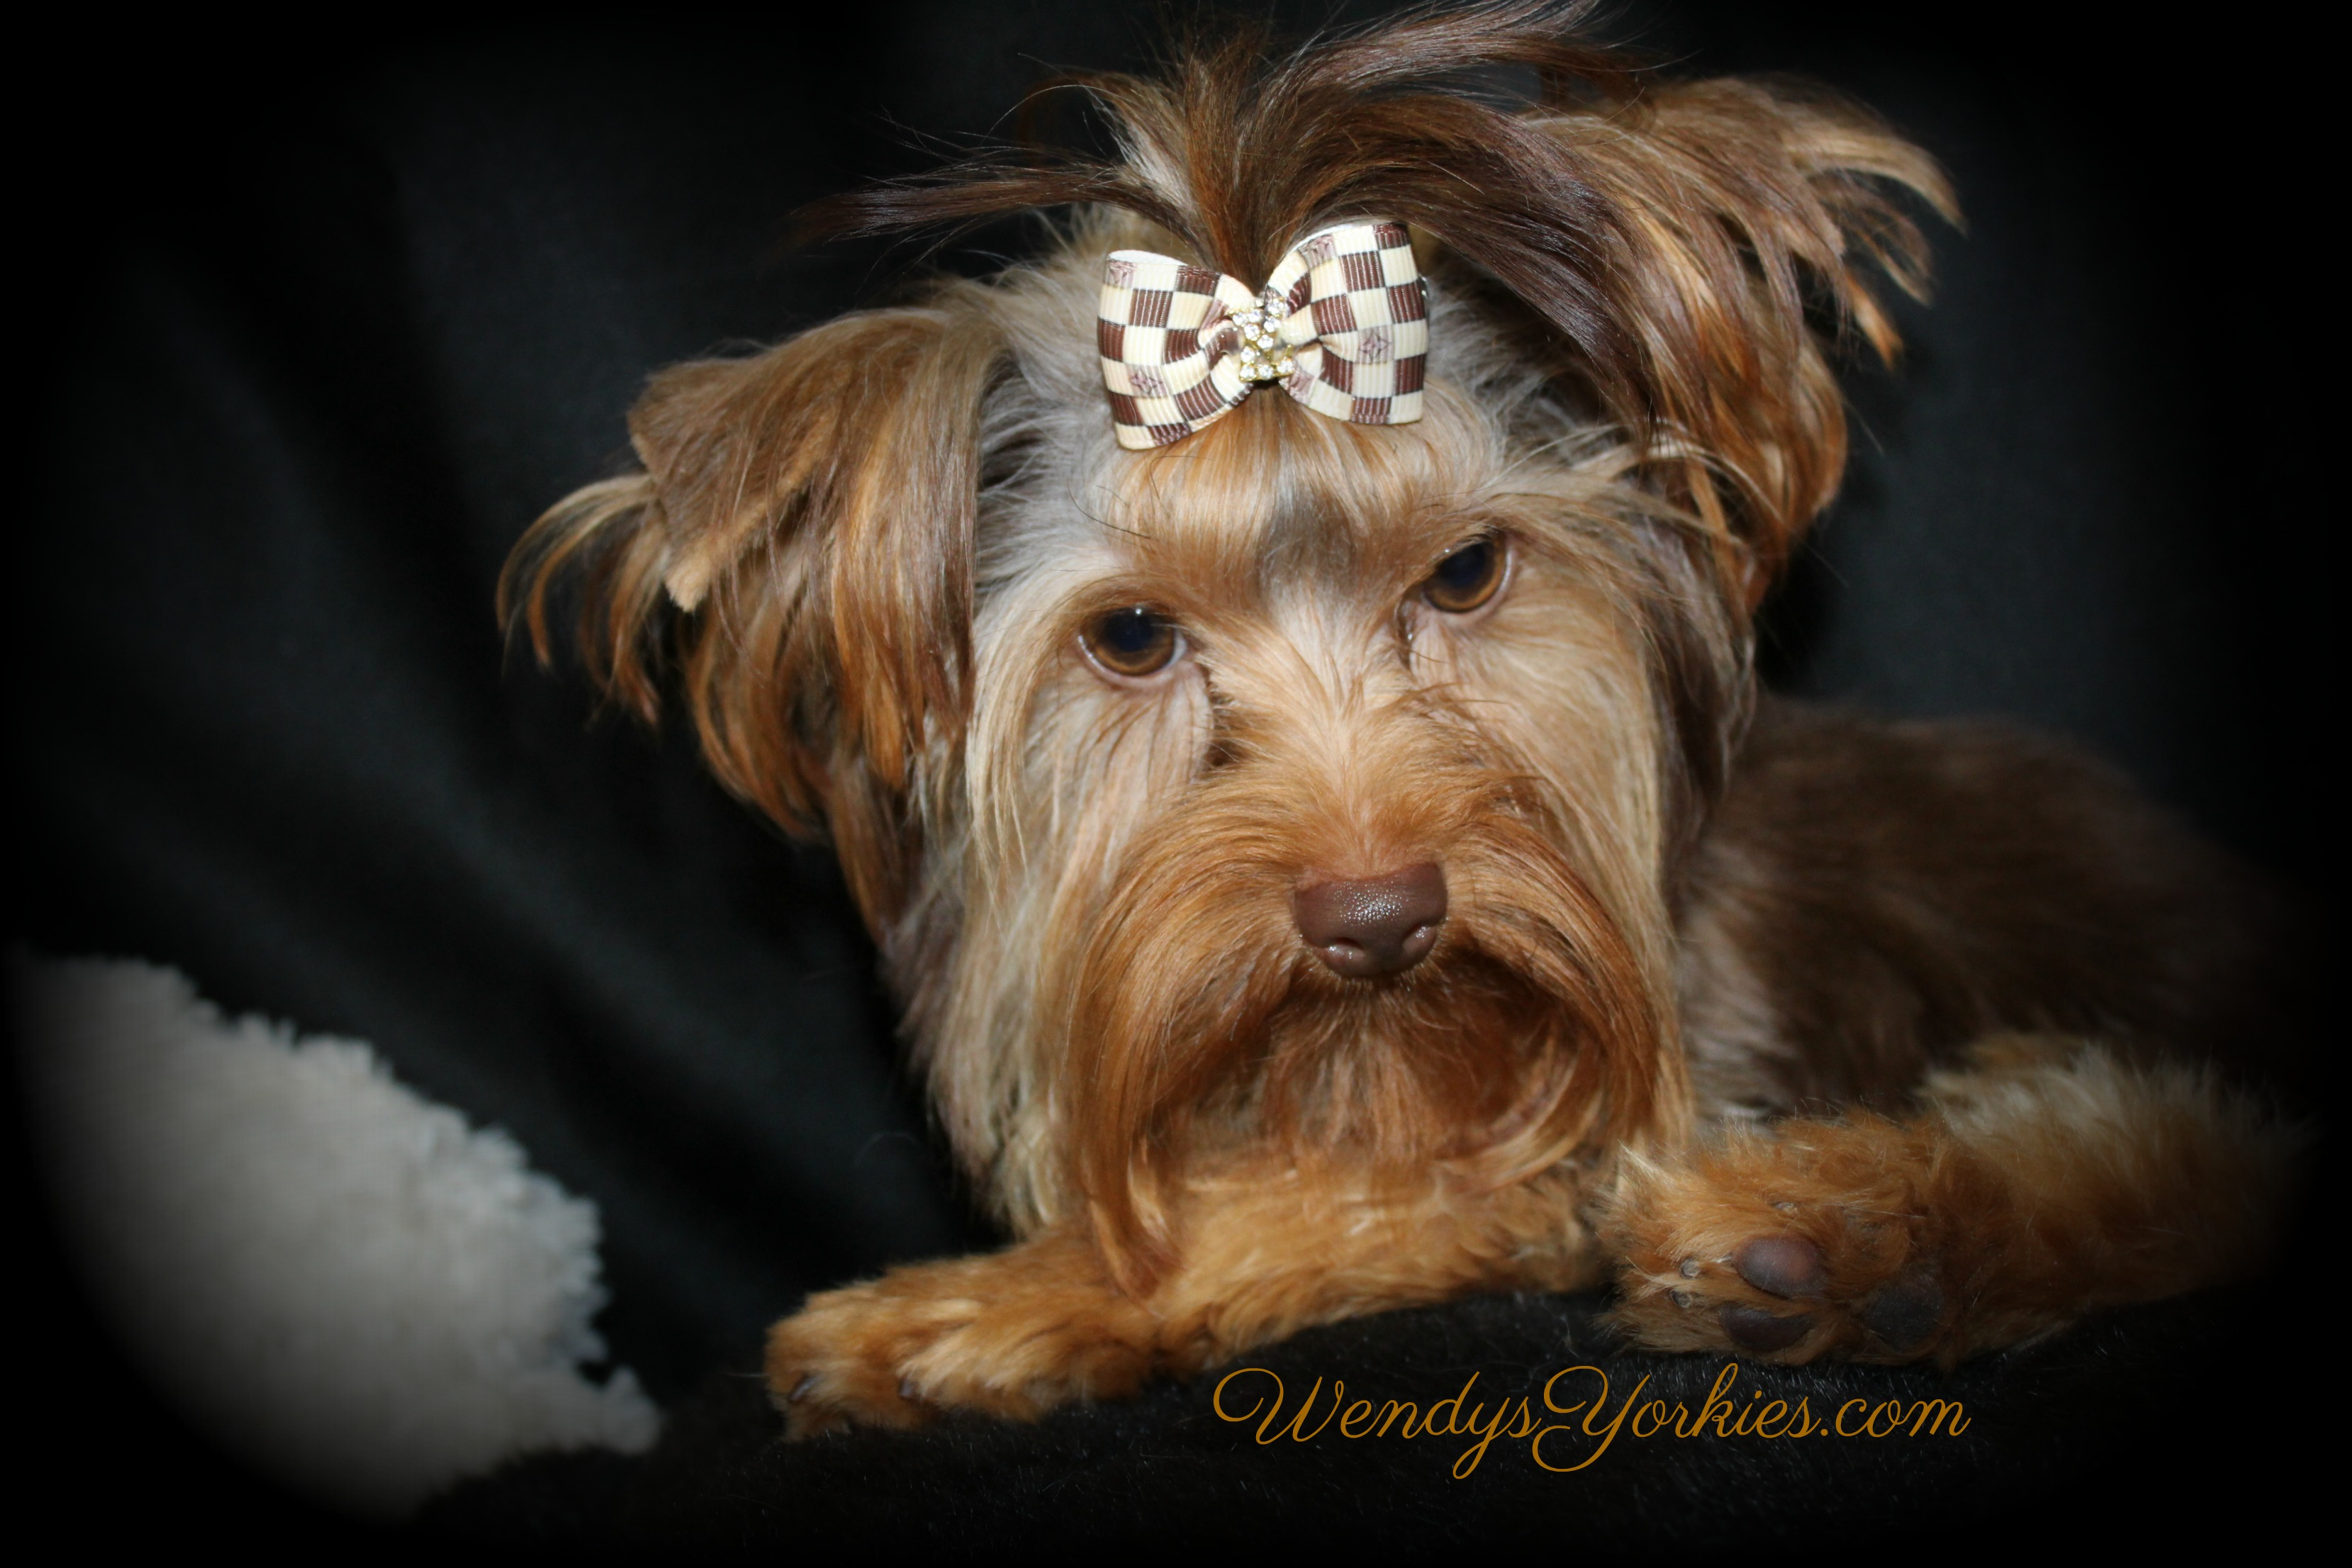 Tec, Chocolate Yorkie puppy for sale, WendysYorkies.com